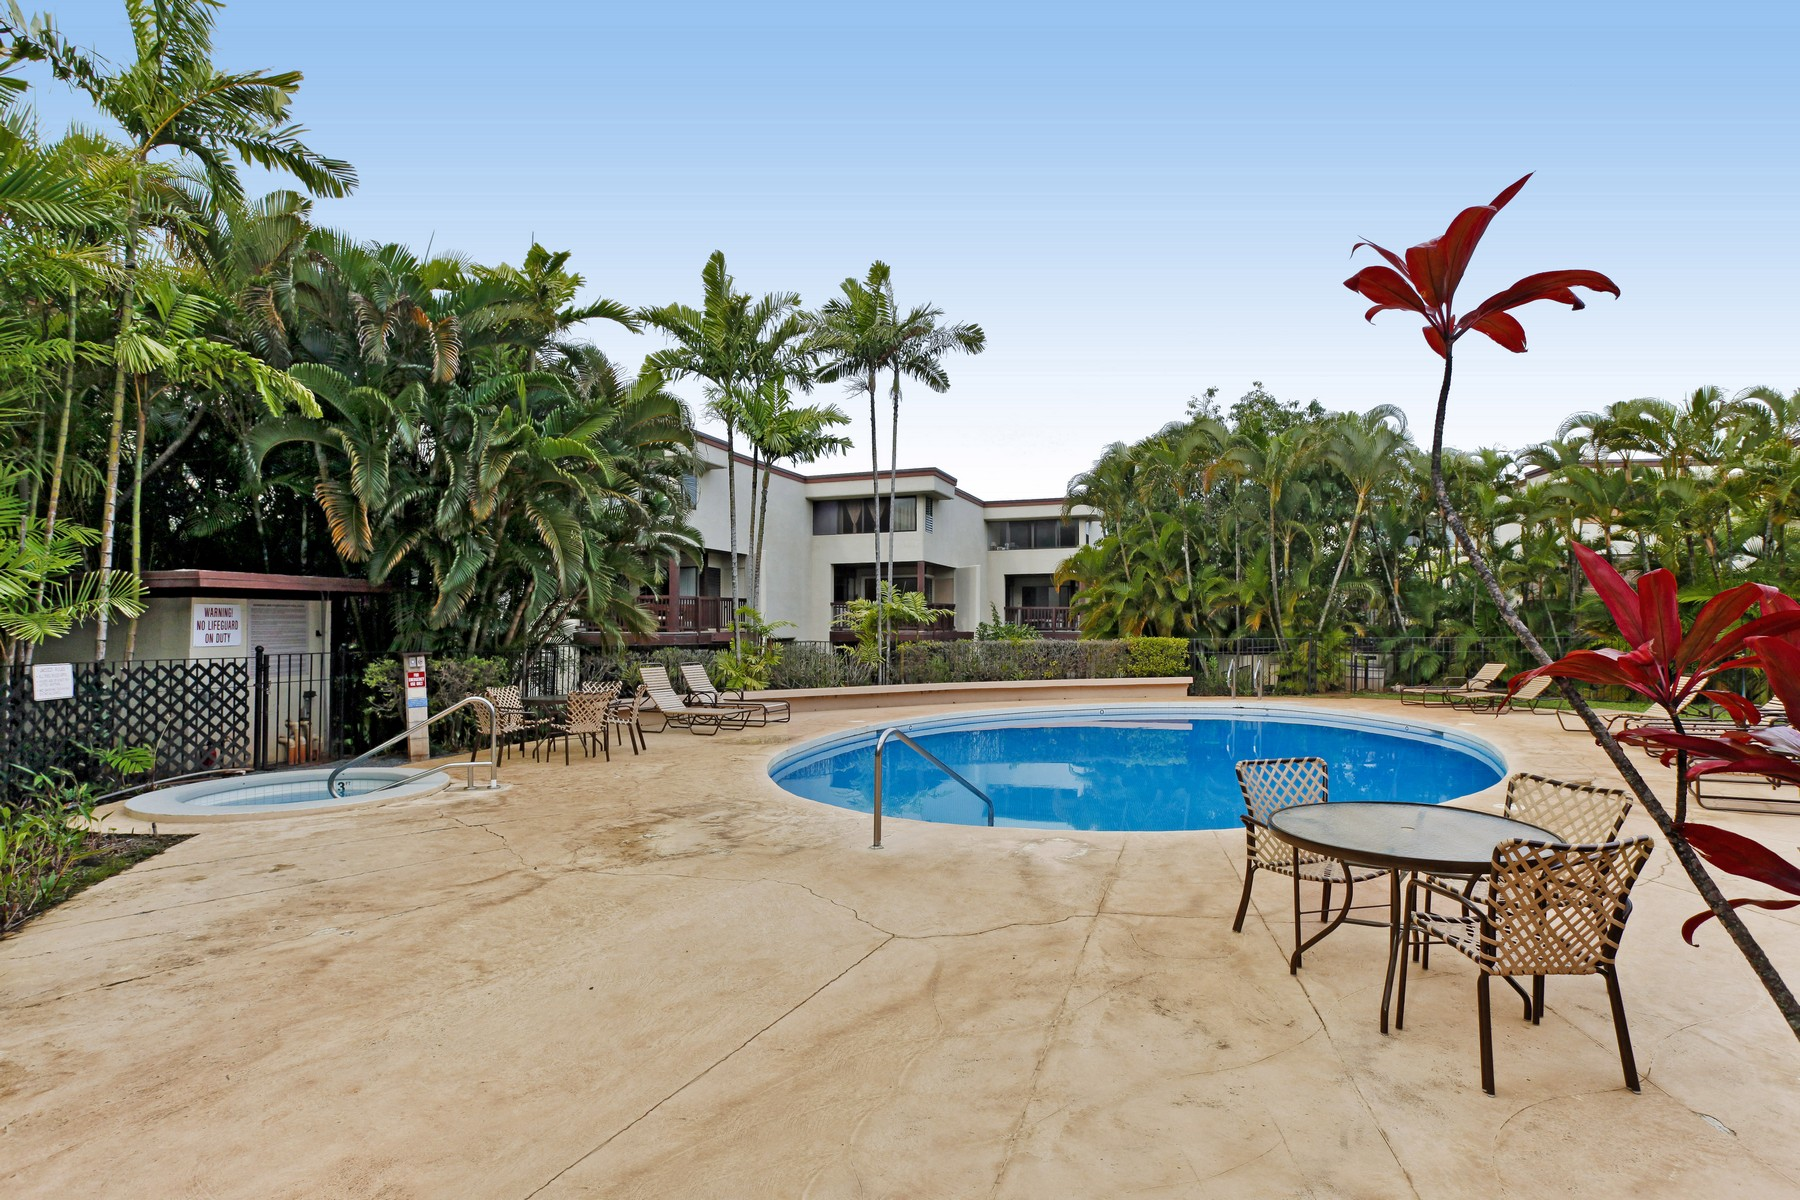 Condominiums for Active at Spacious Puu Alii Condo 46-130 Kiowai St #2713 Kaneohe, Hawaii 96744 United States